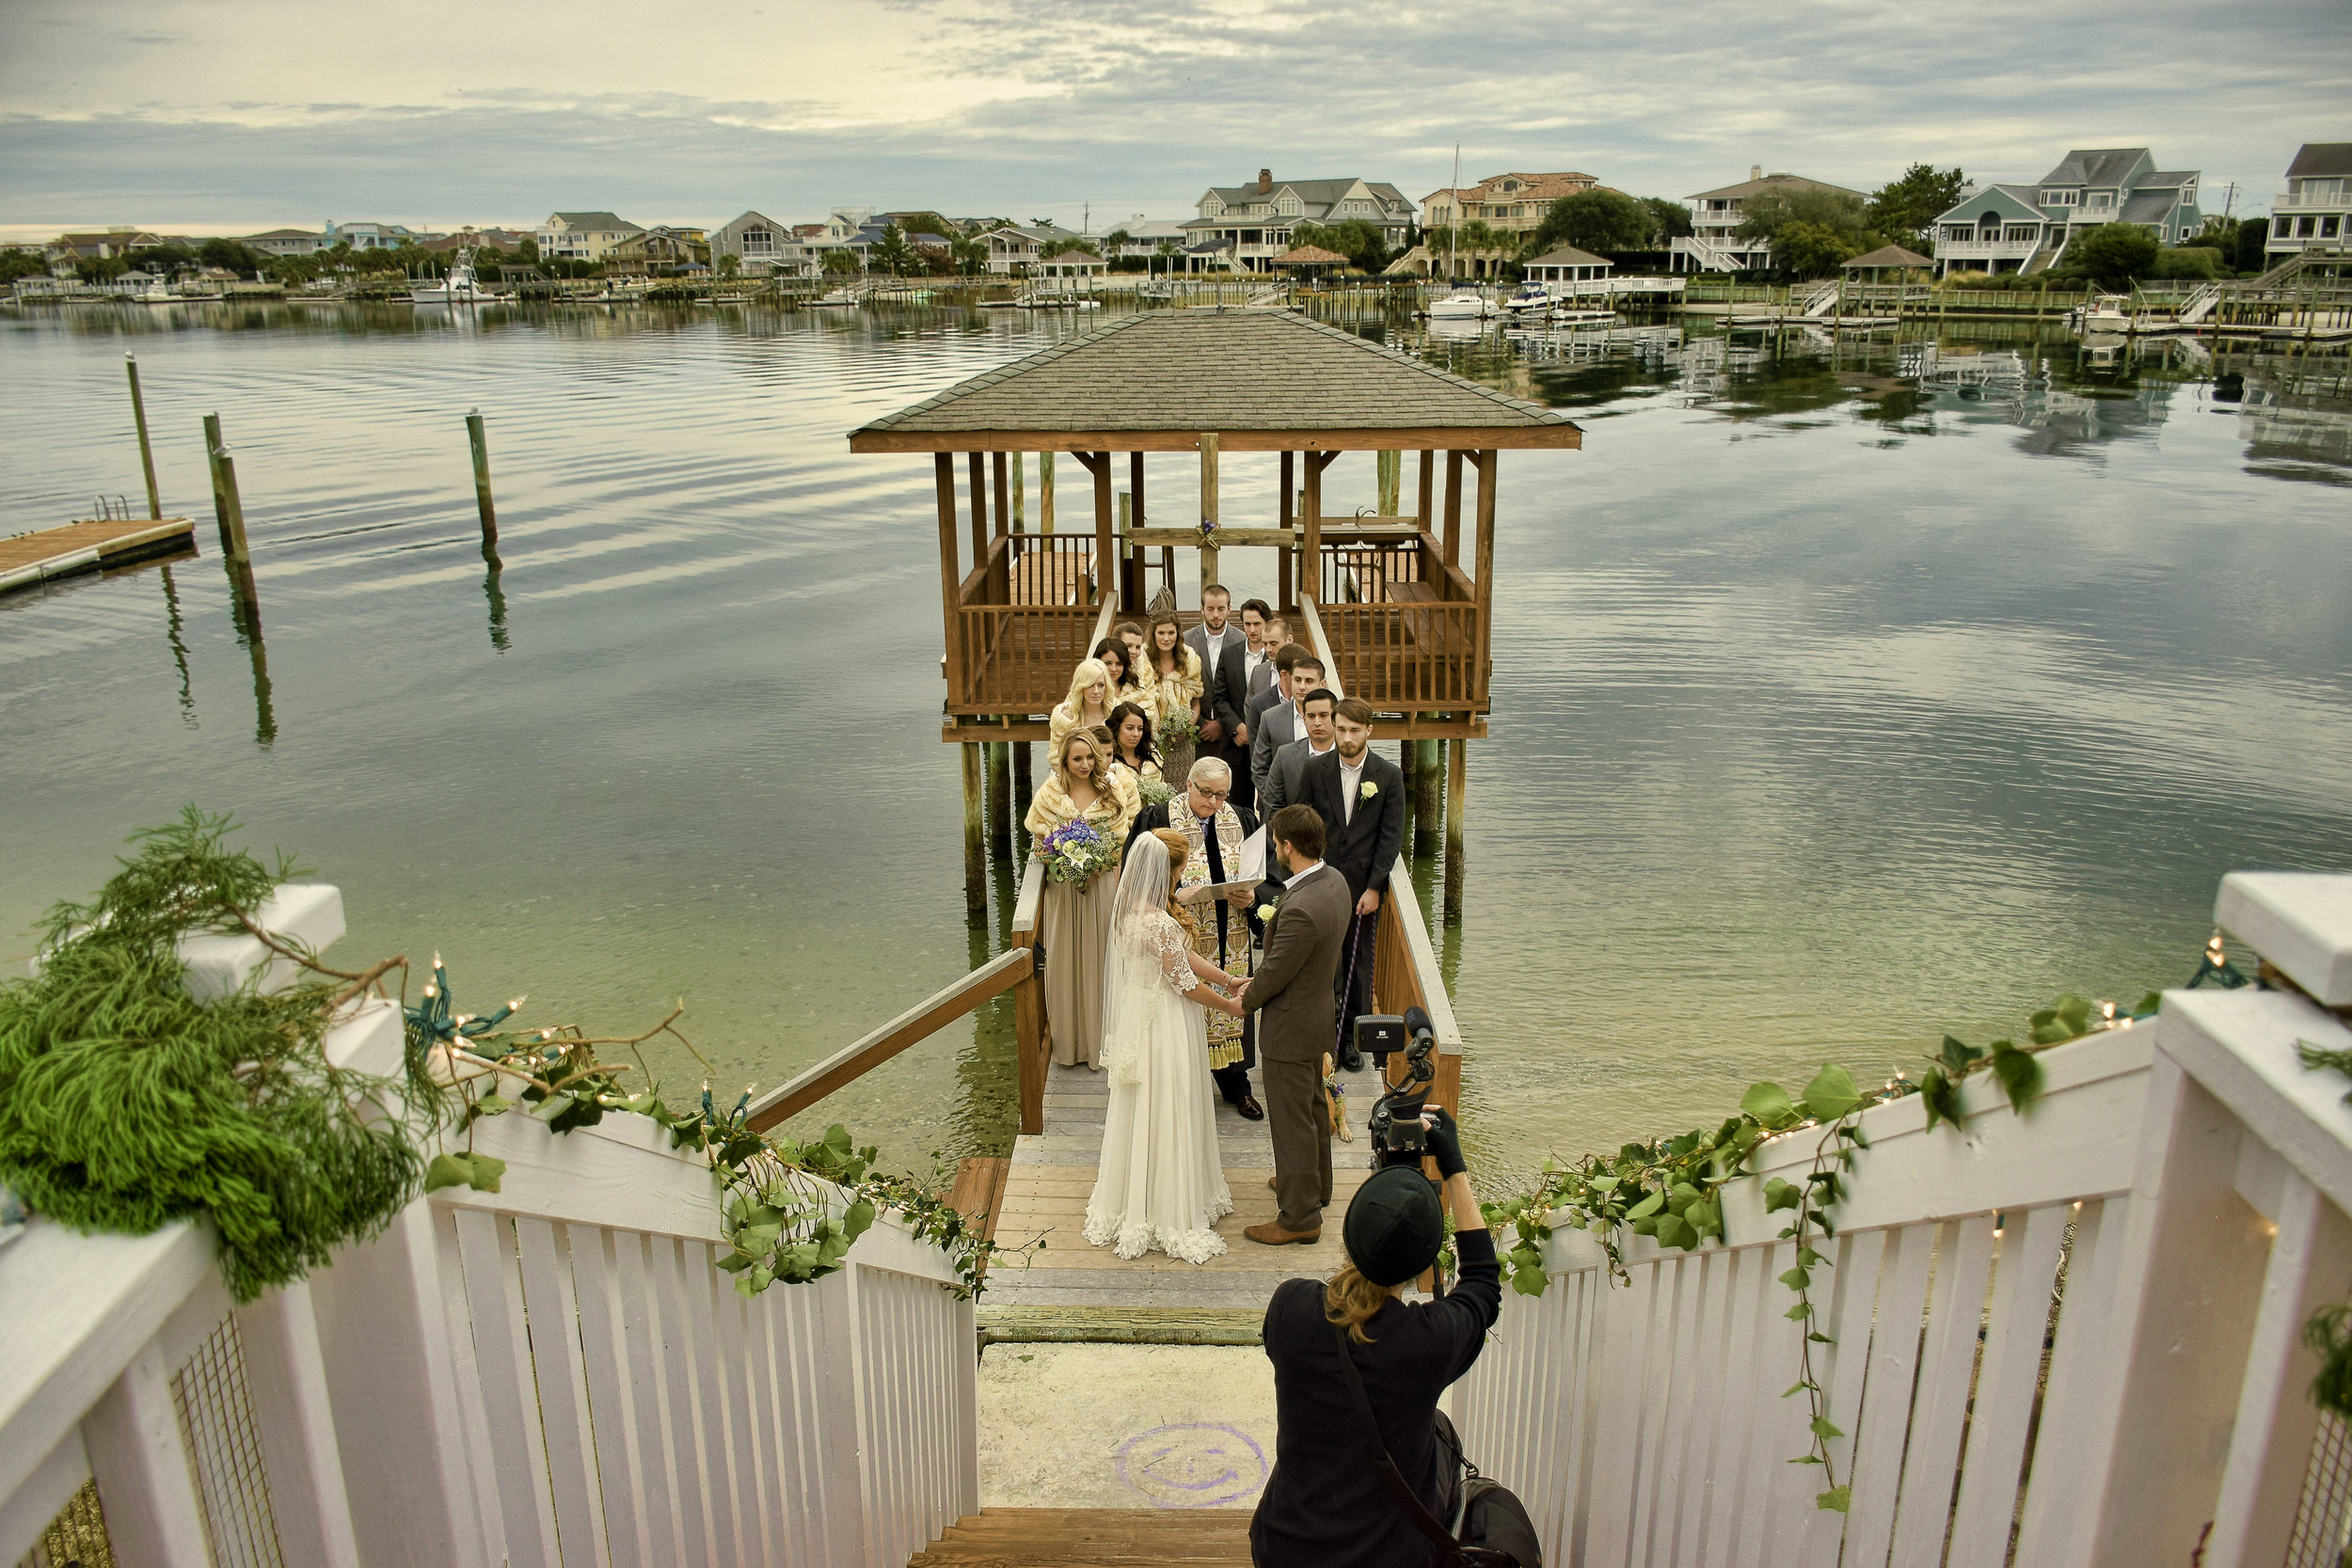 - Wide angle shot of the wedding ceremony. Wrightsville Beach, NC.